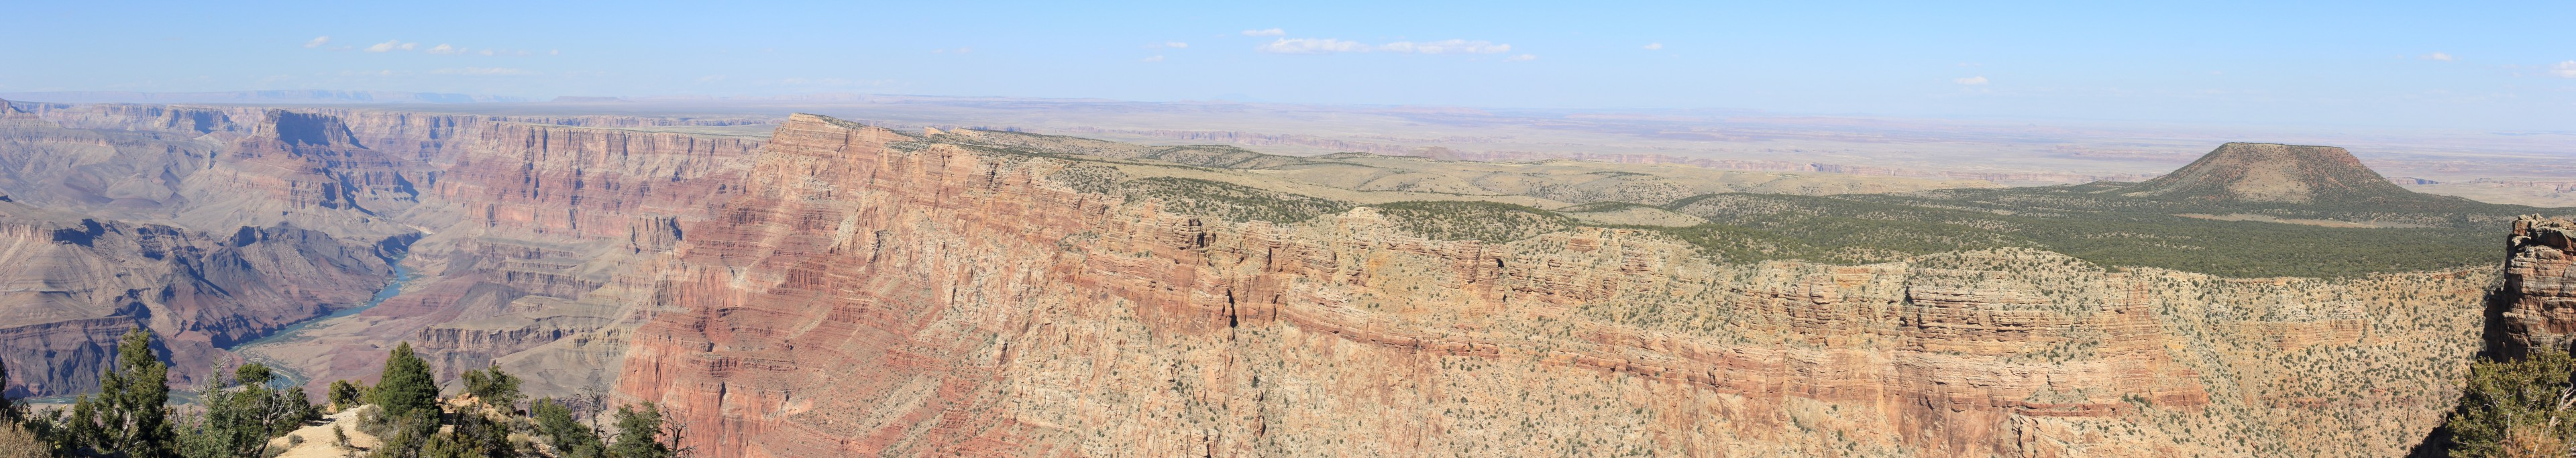 Desert View. With the Colorado on the left, the anticline to the Painted Desert in the distance, with a beautiful cinder cone standing out of the anticline on the right.